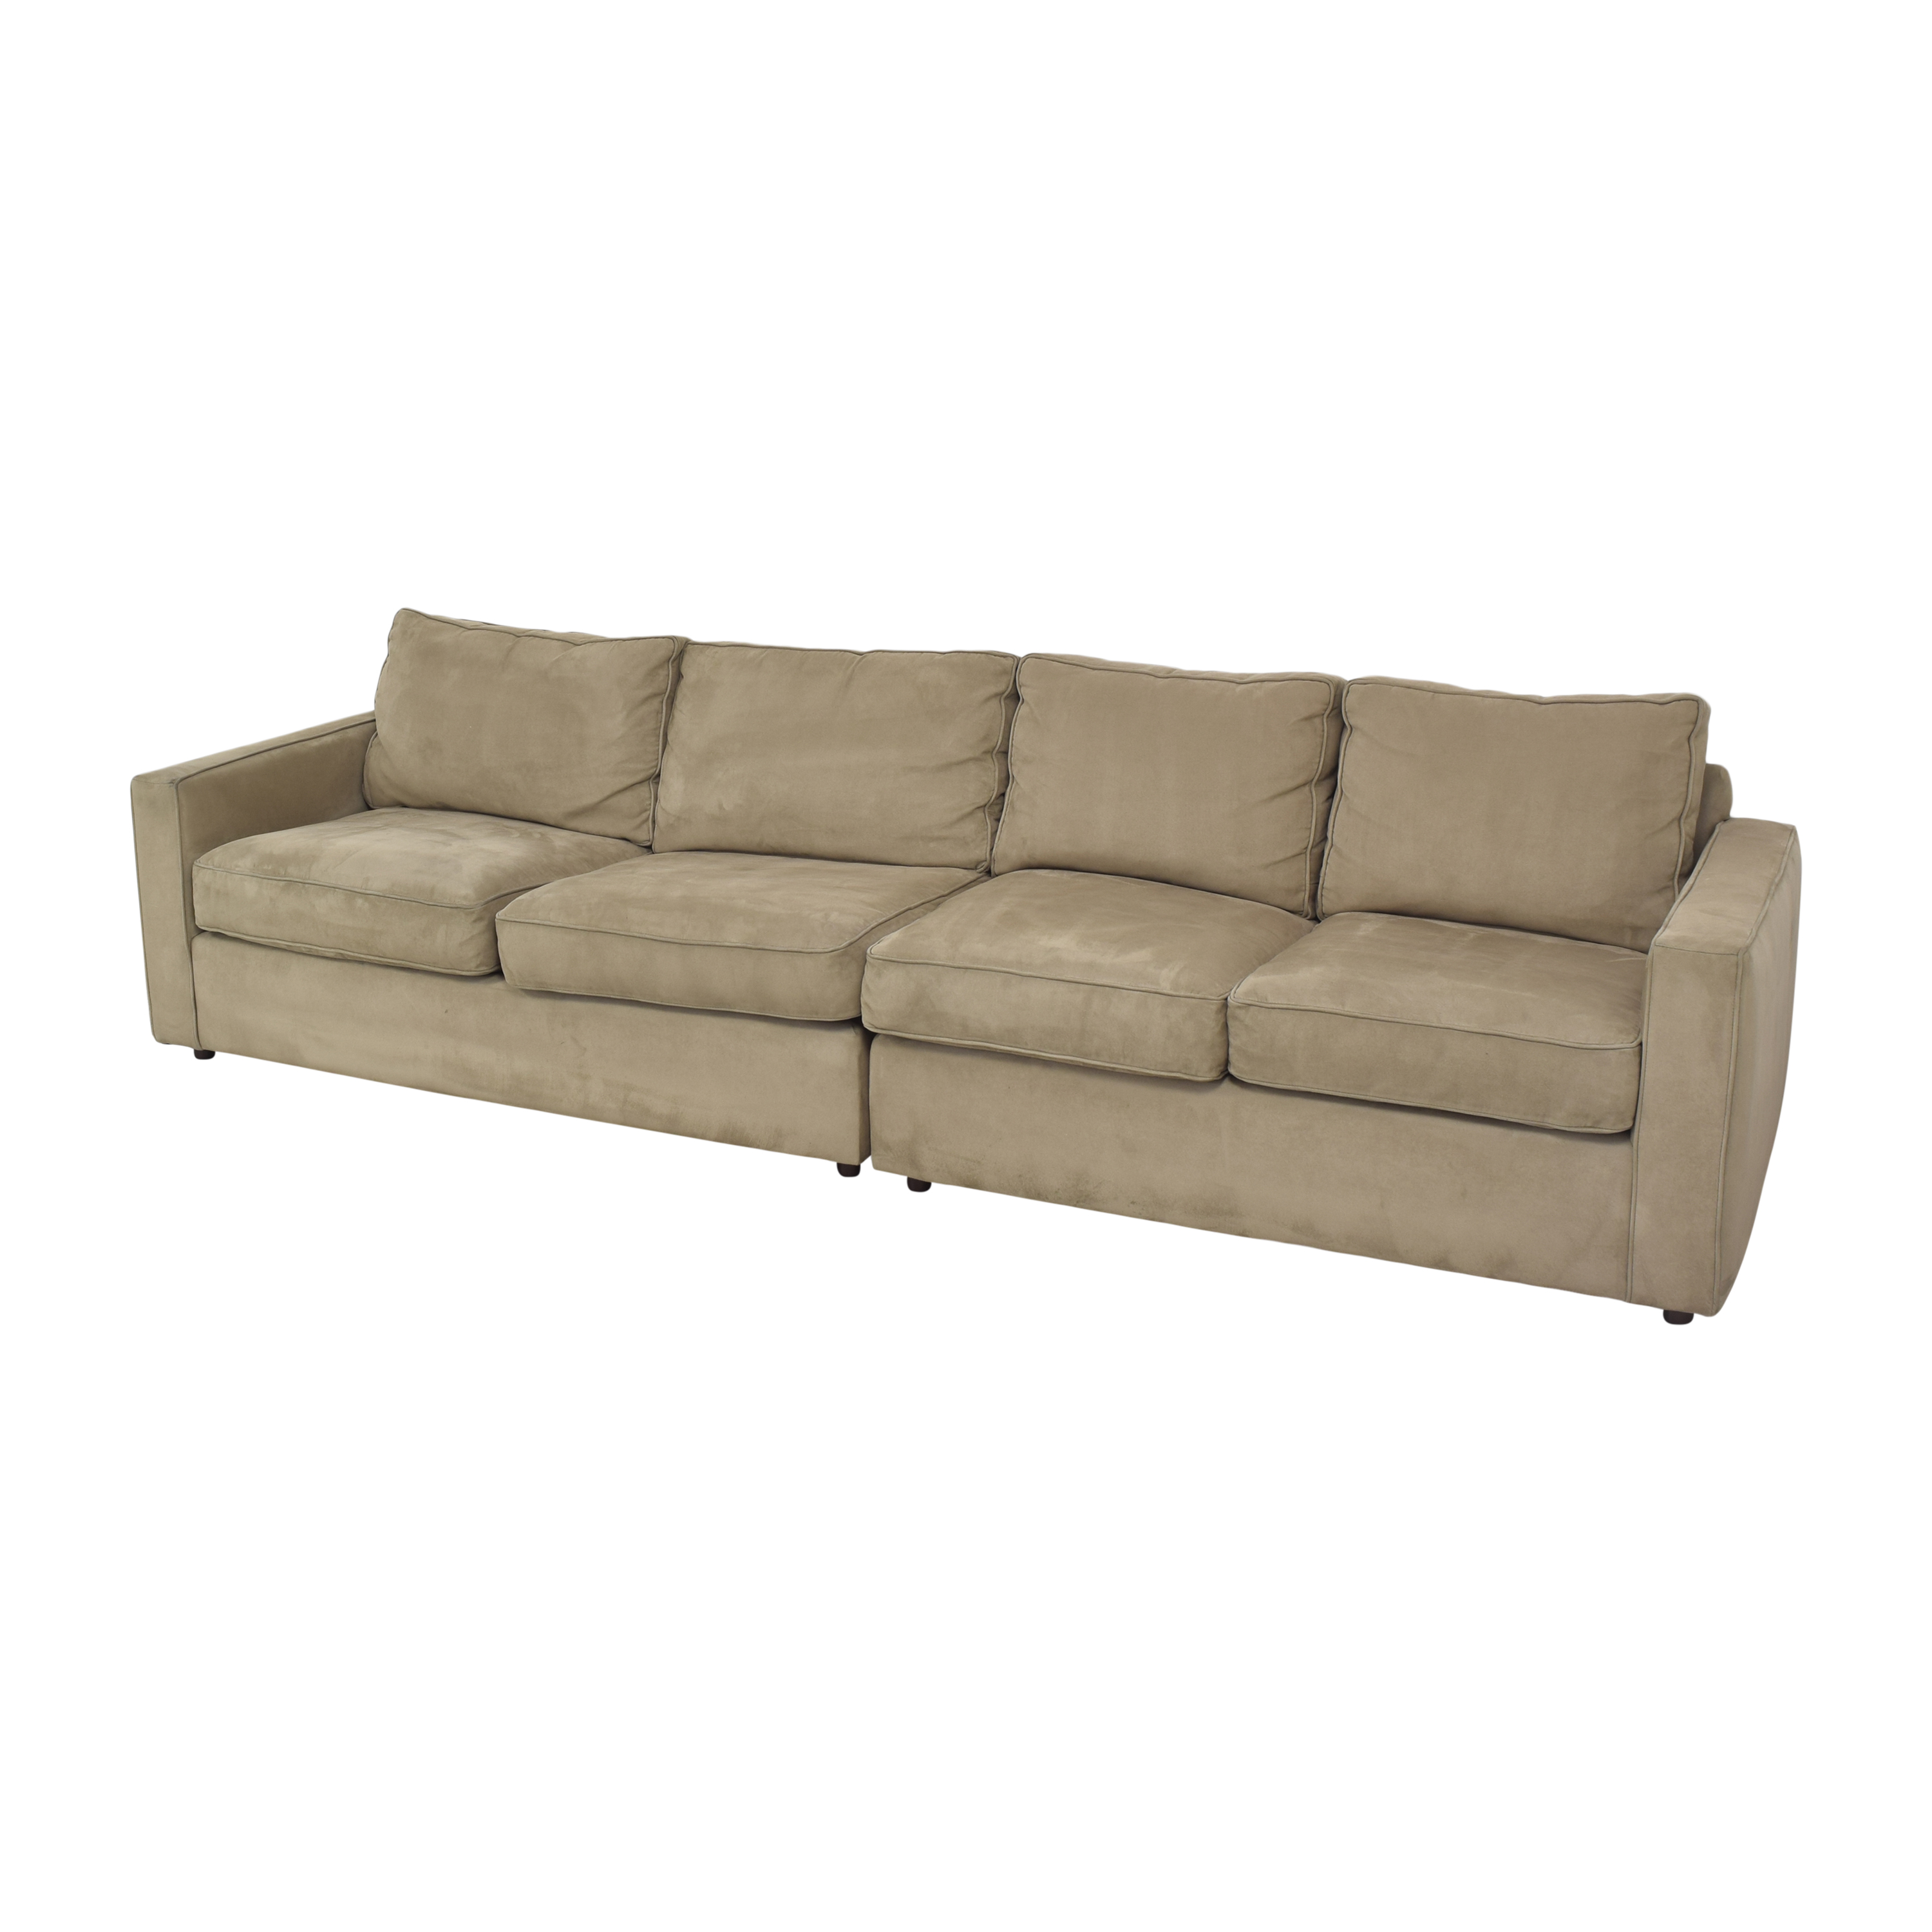 Room & Board Room & Board Two Piece Sectional Sofa pa